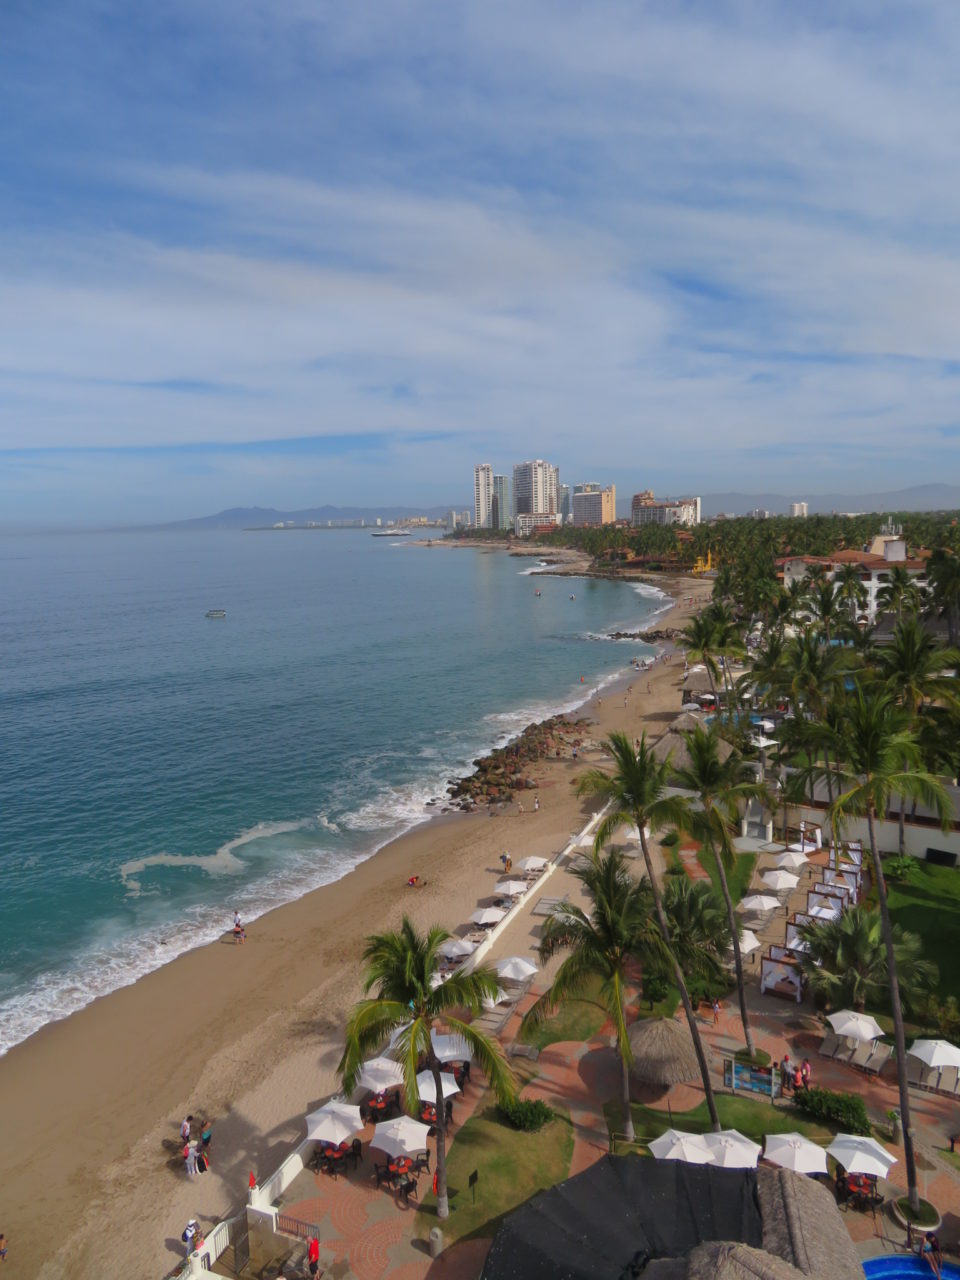 Some of the many inviting beaches of Puerto Vallarta